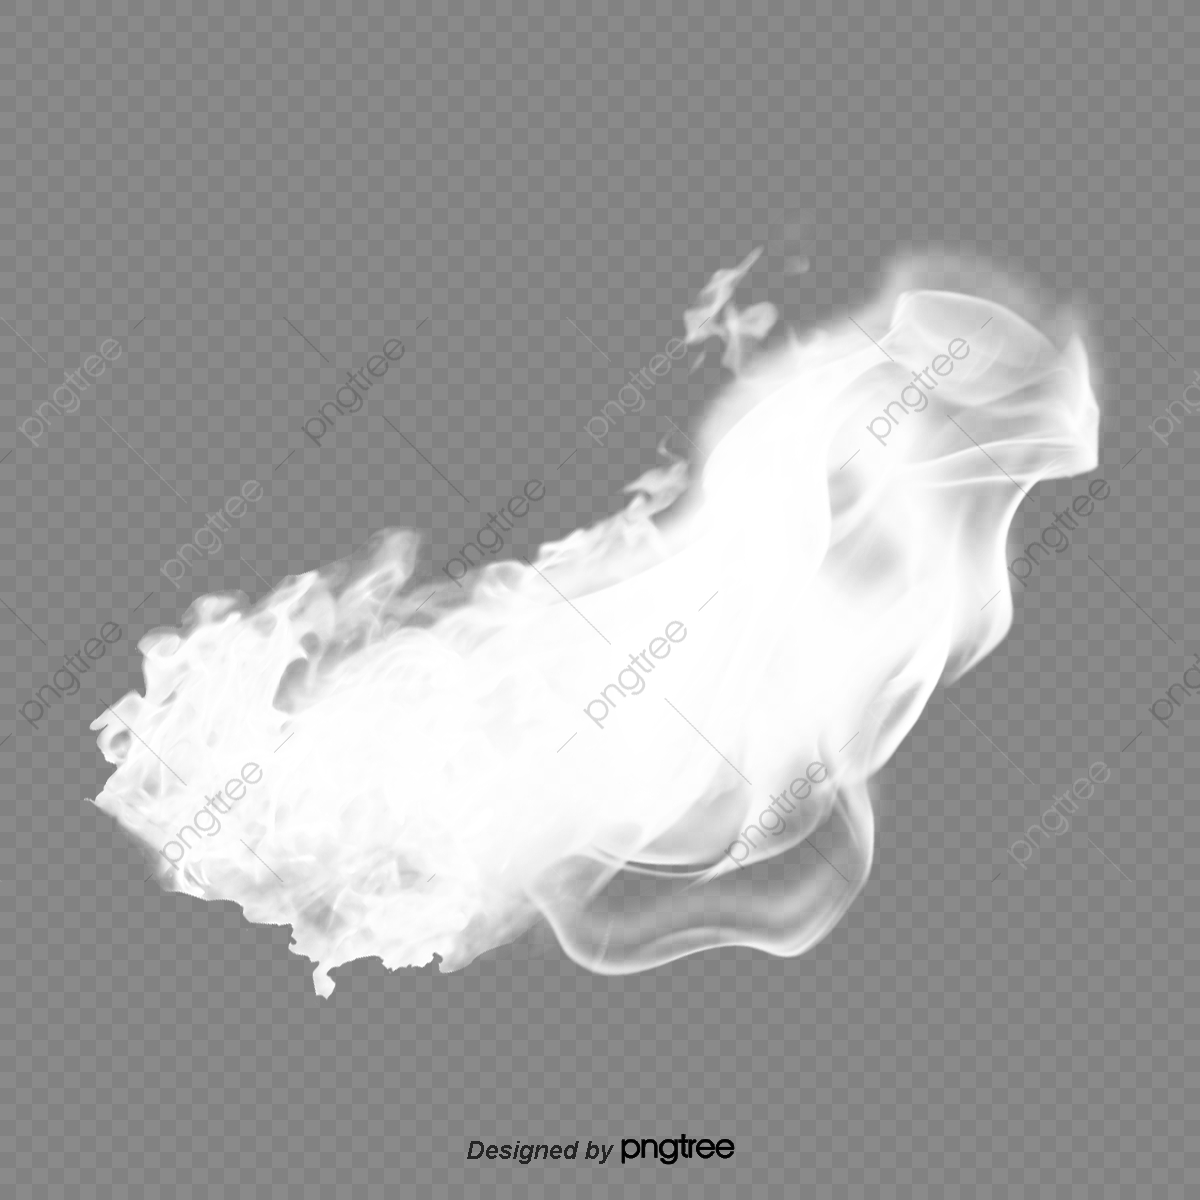 white smoke png images vector and psd files free download on pngtree https pngtree com freepng white smoke element 4155208 html